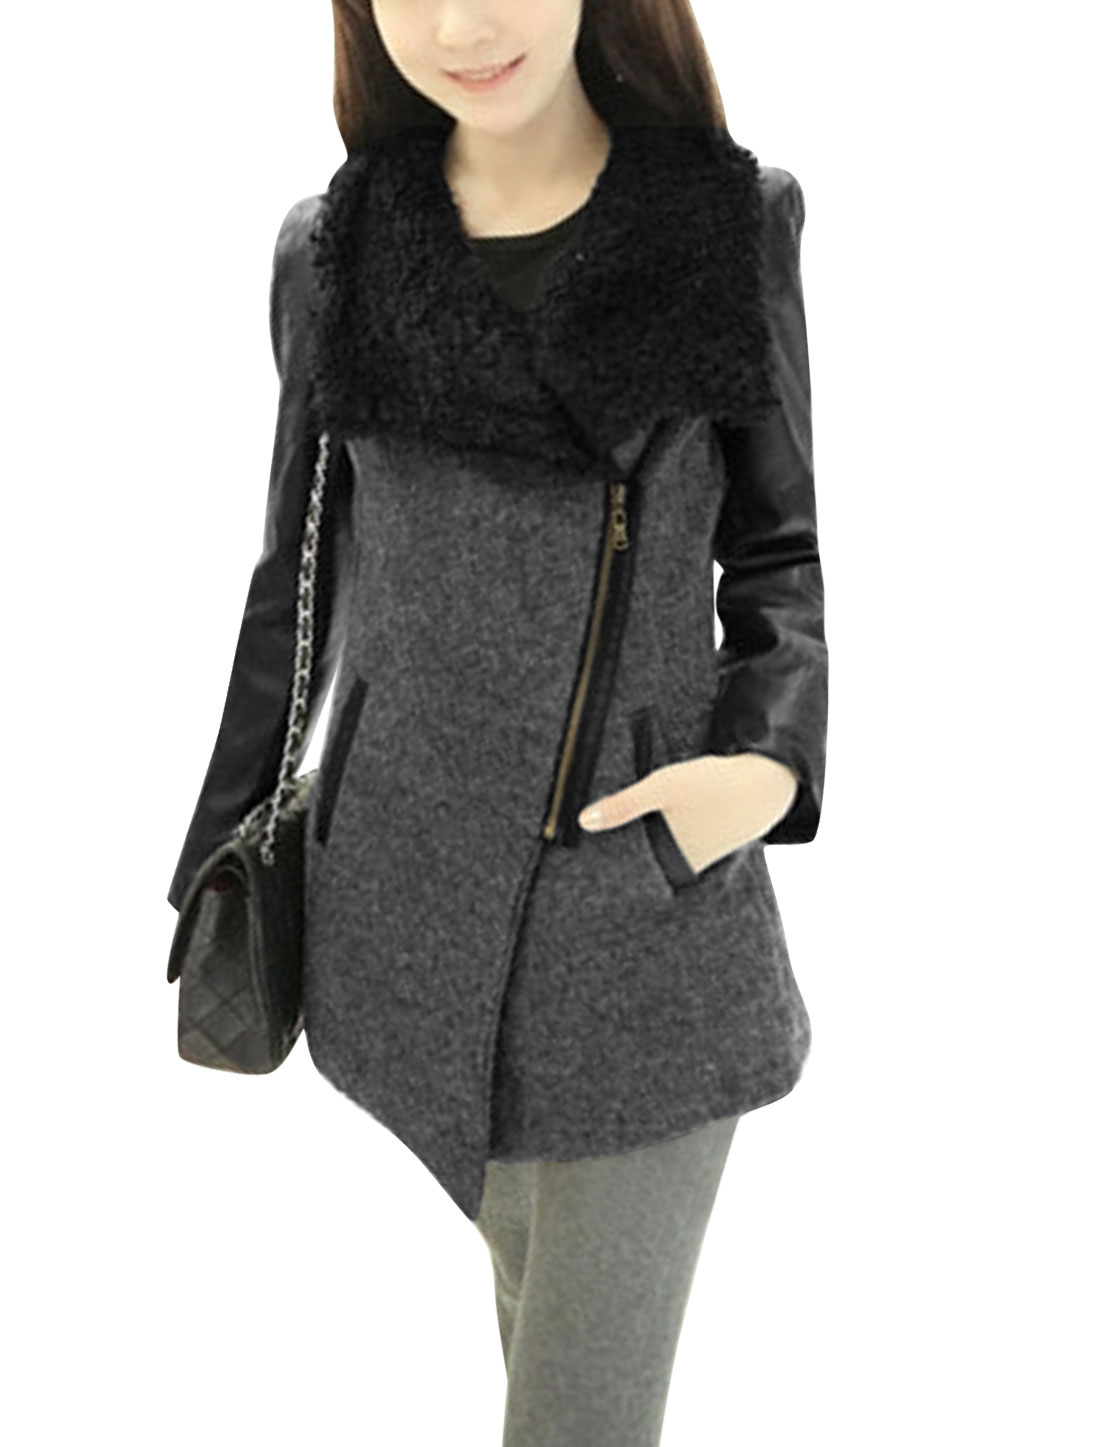 Ladies Dark Gray Turn Down Collar Inclined Zippered Front Splice Jacket XS